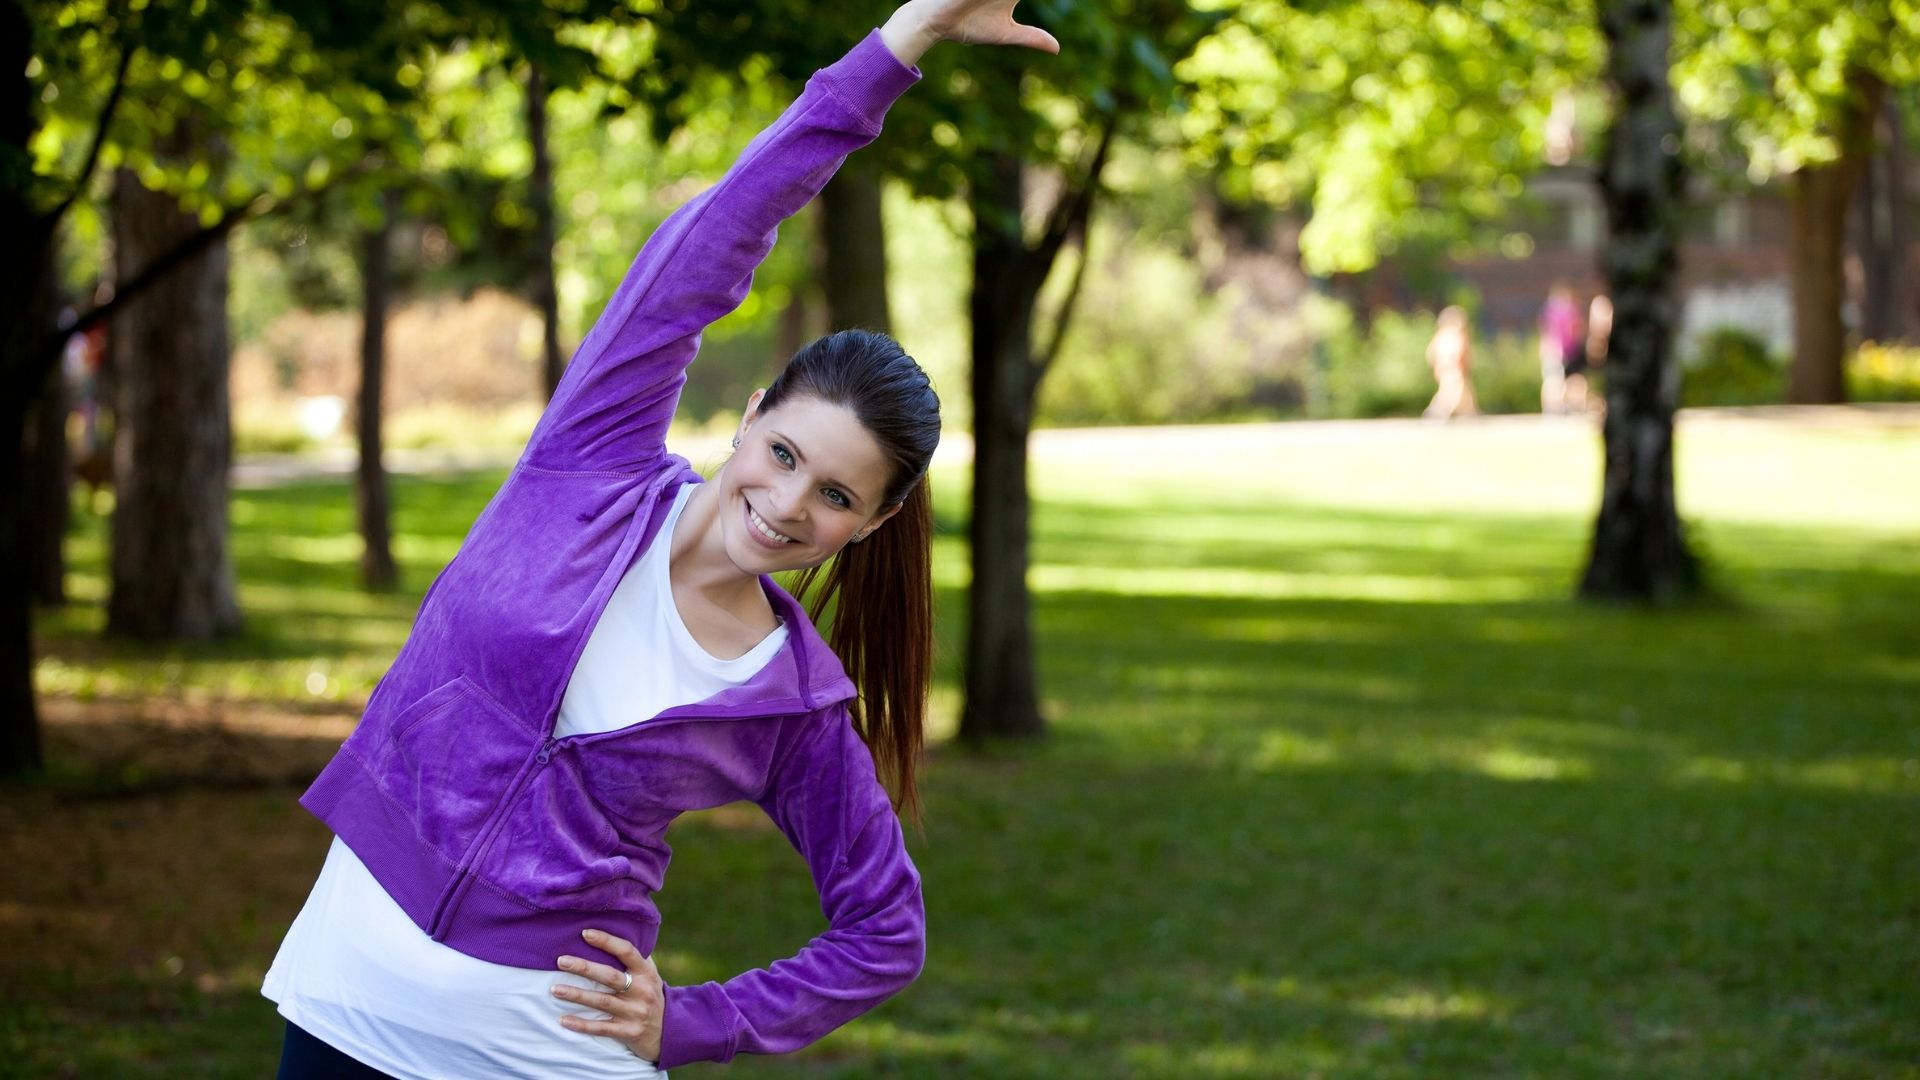 exercise morning - Exercising in the morning is better than at night